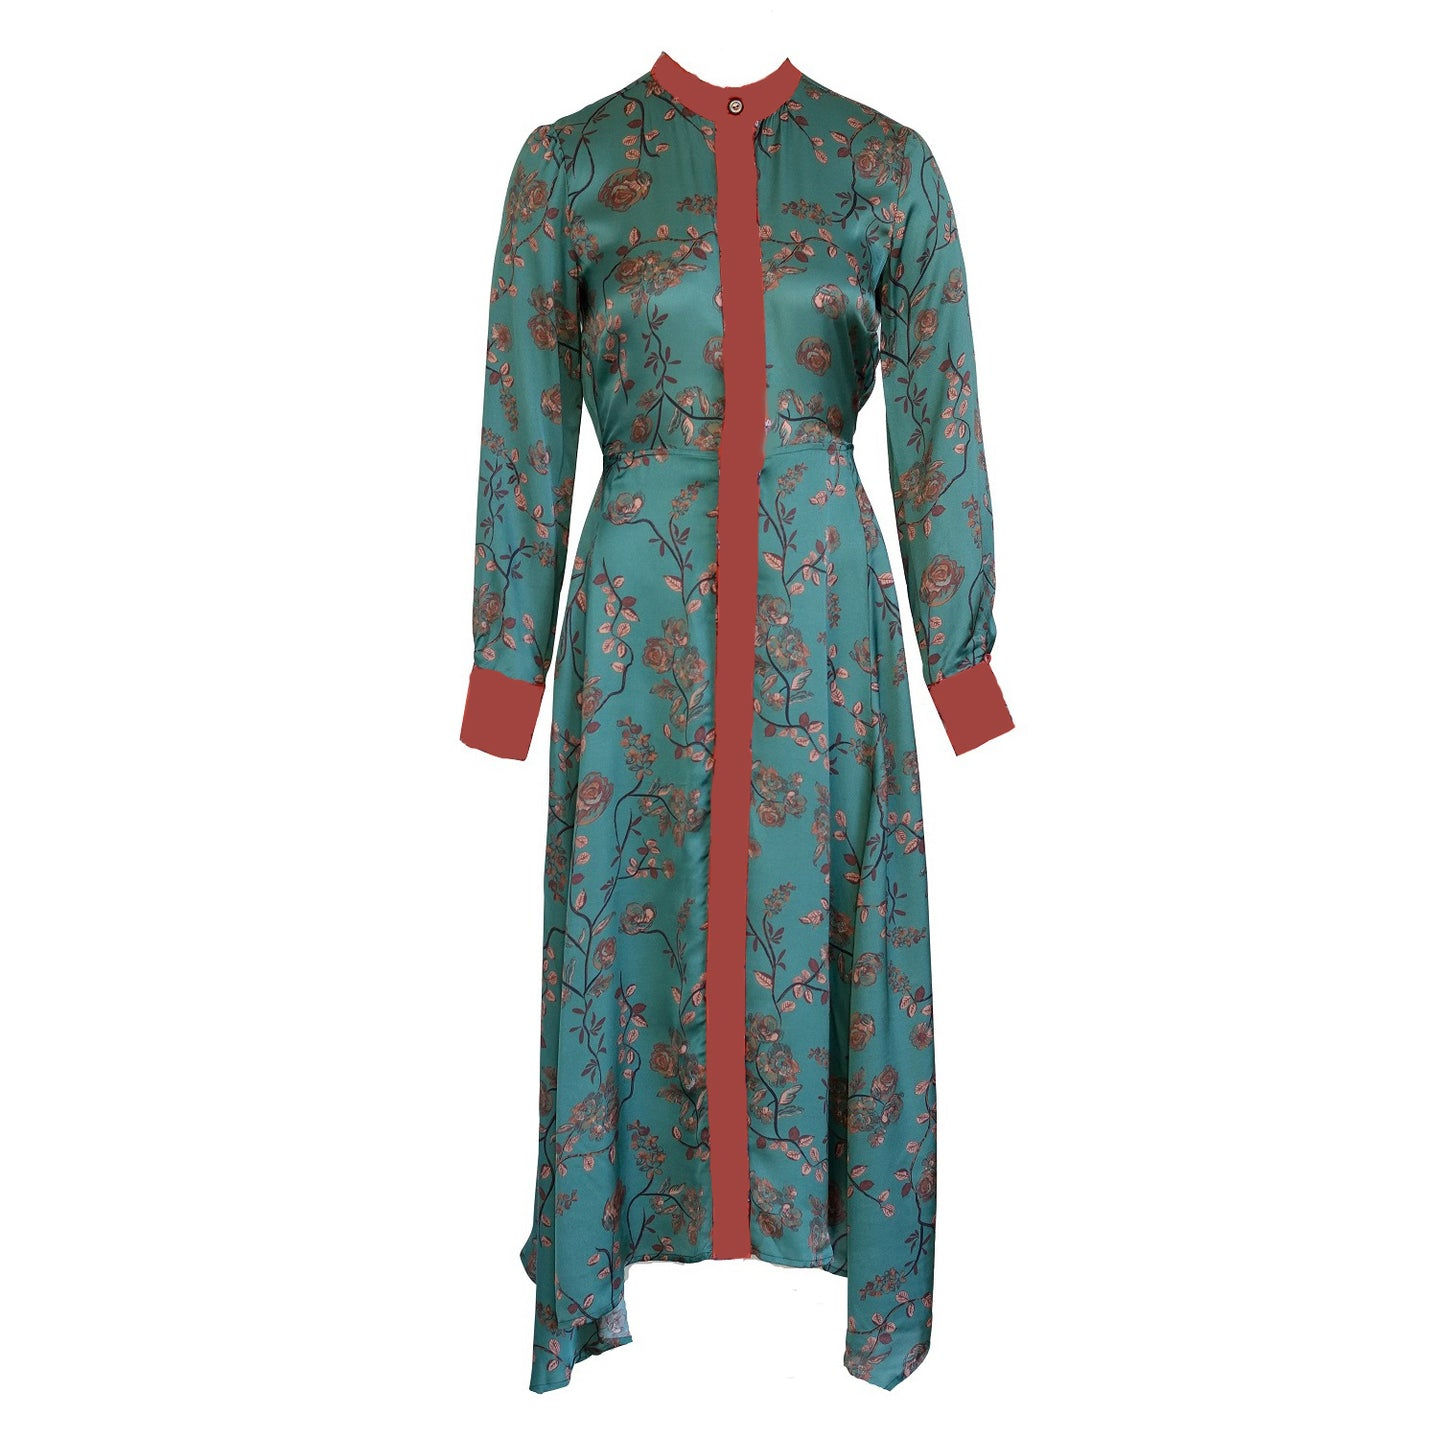 Green Satin Dress Edem With Japanese Style Floral Print